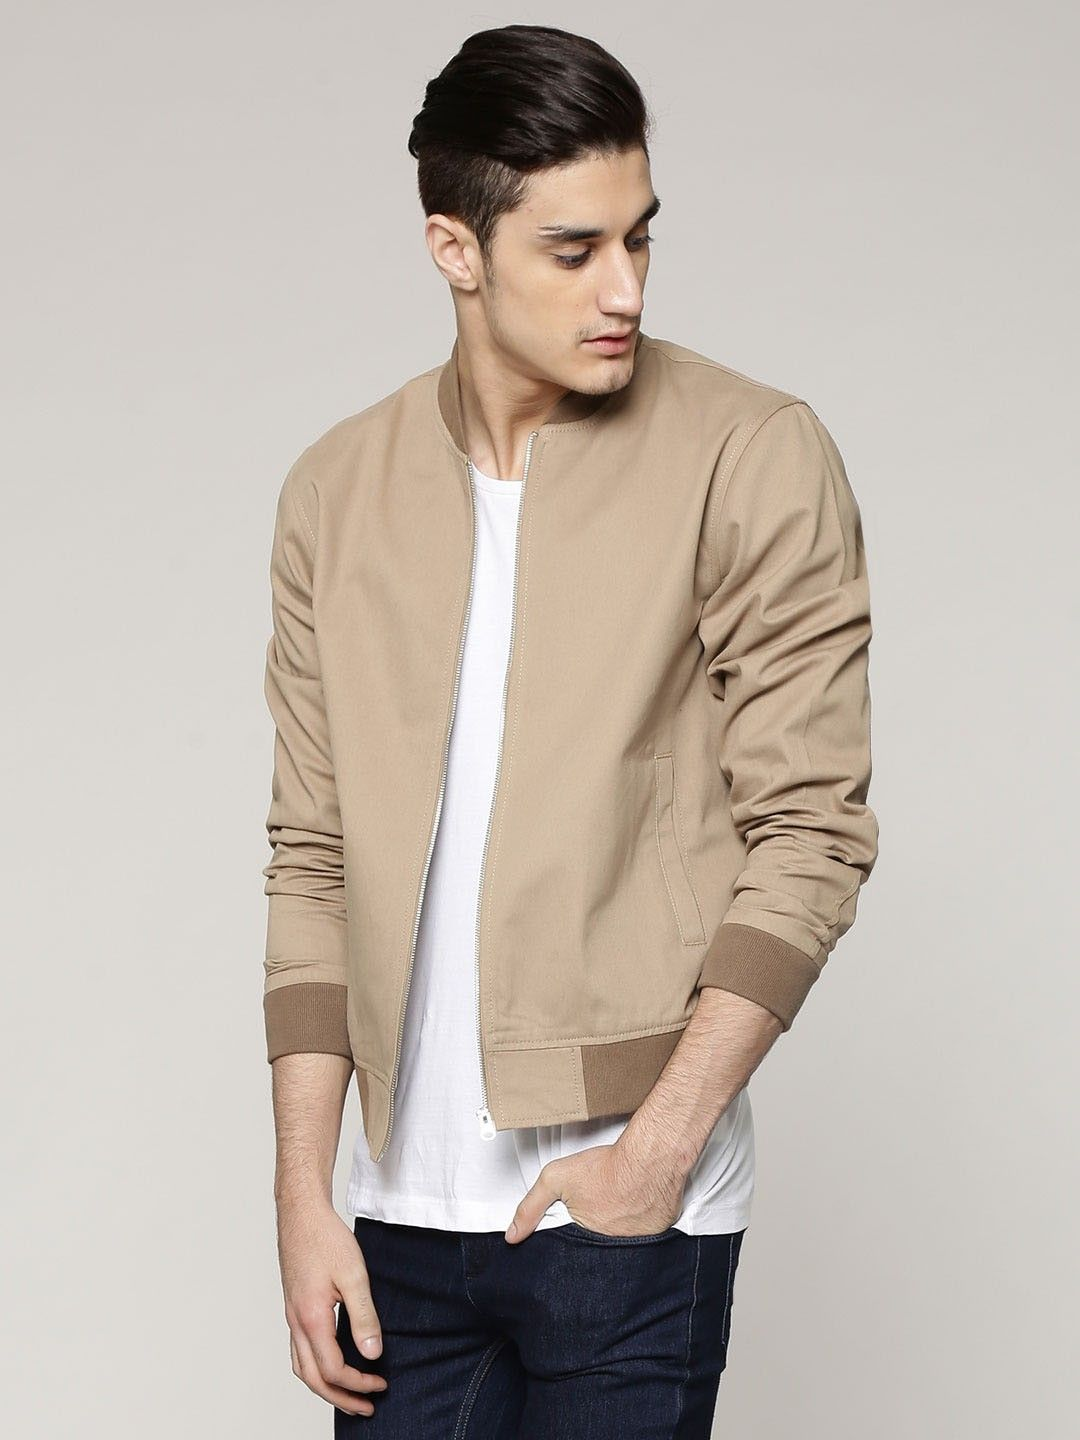 Buy NEW LOOK Cotton Twill Bomber Jacket For Men - Men's Brown ...